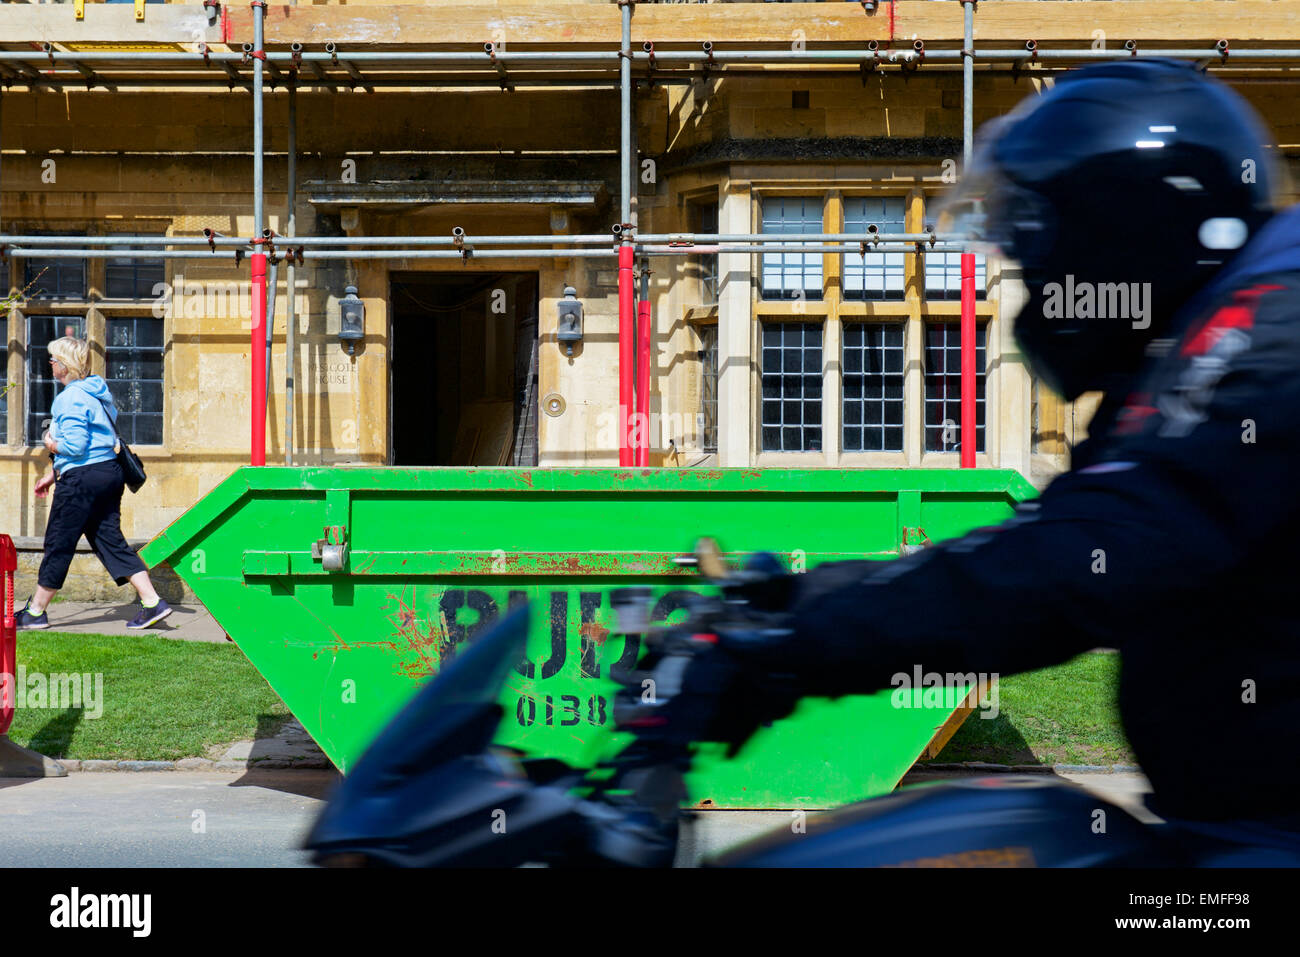 Rubbish skip outside house in Chipping Campden, being renovated, Gloucestershire, England UK - Stock Image